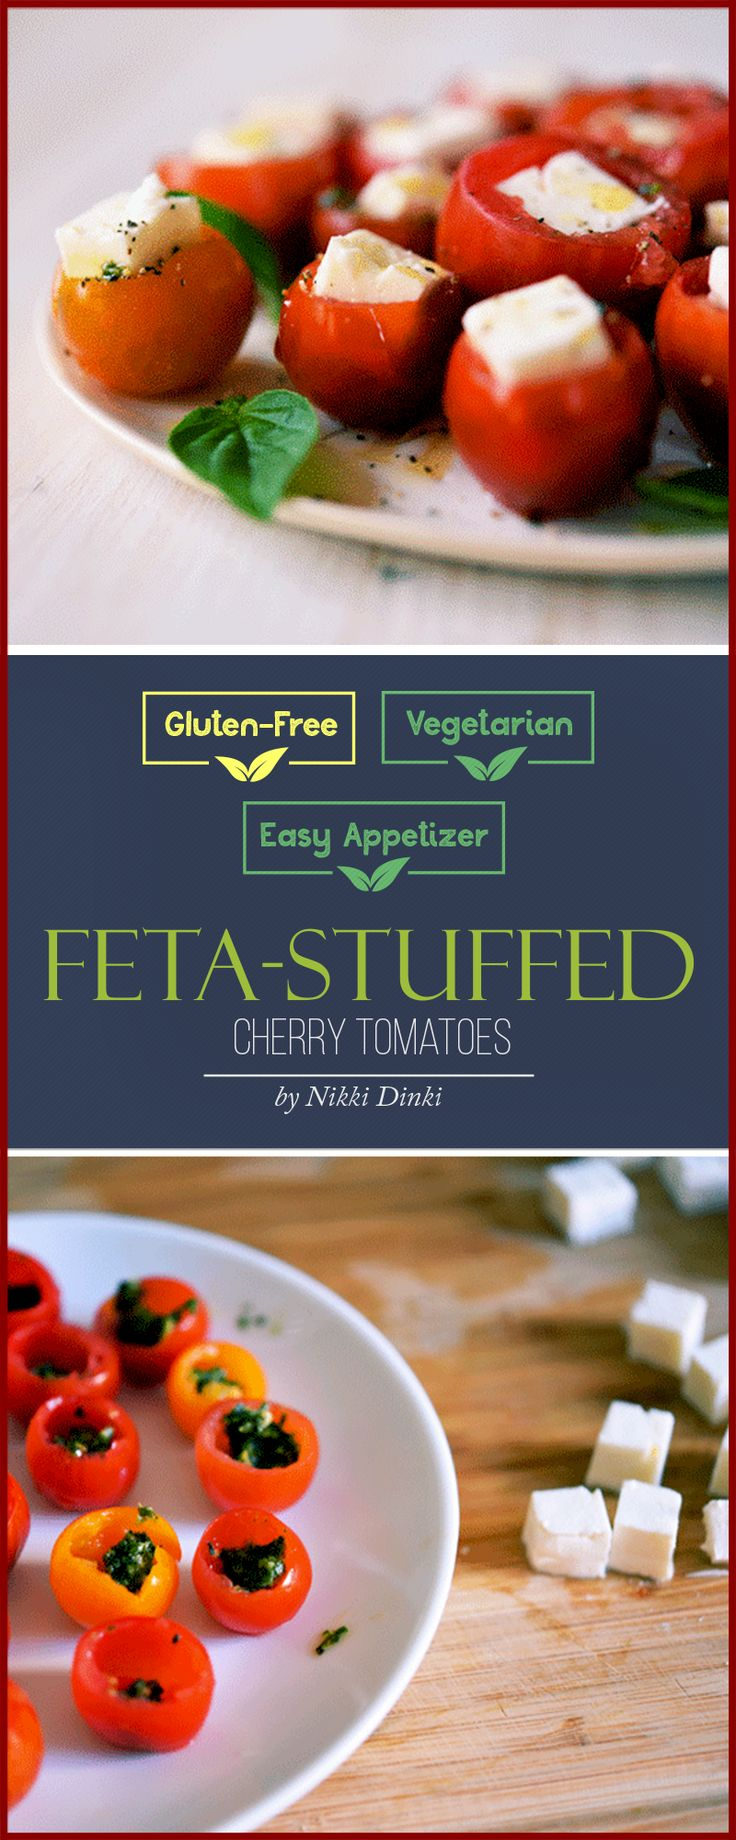 A perfect easy appetizer that's both healthy and delicious. These feta-stuffed cherry tomatoes are a flavorful, bite-sized party food. plus they're gluten-free and vegetarian, great for summer parties or a nutritious snack.